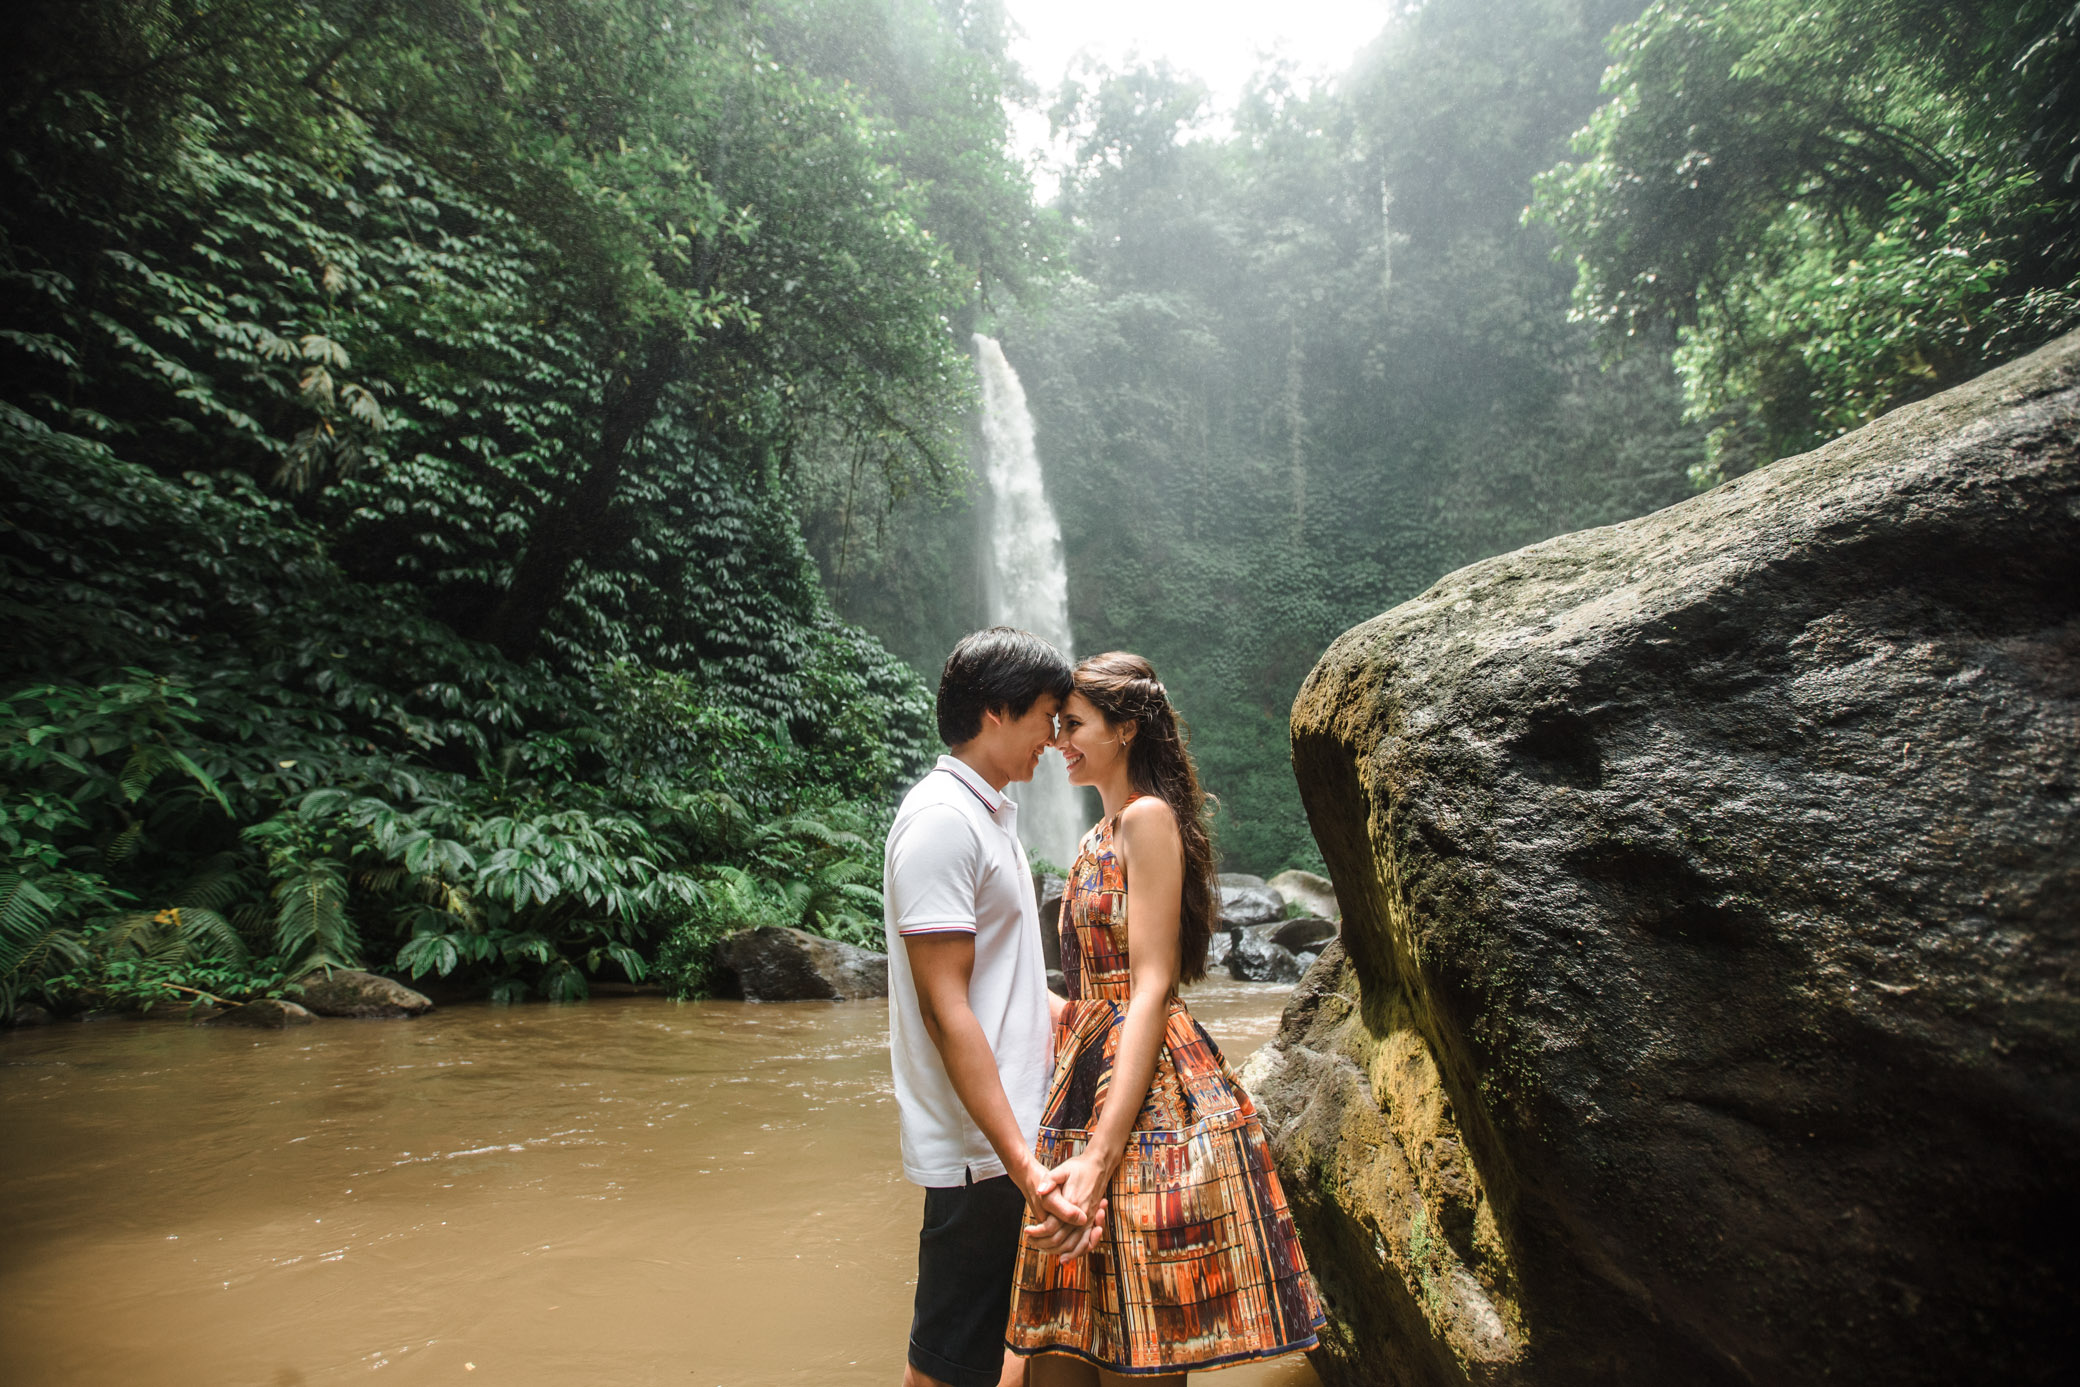 Lovers hold hands at the waterfall